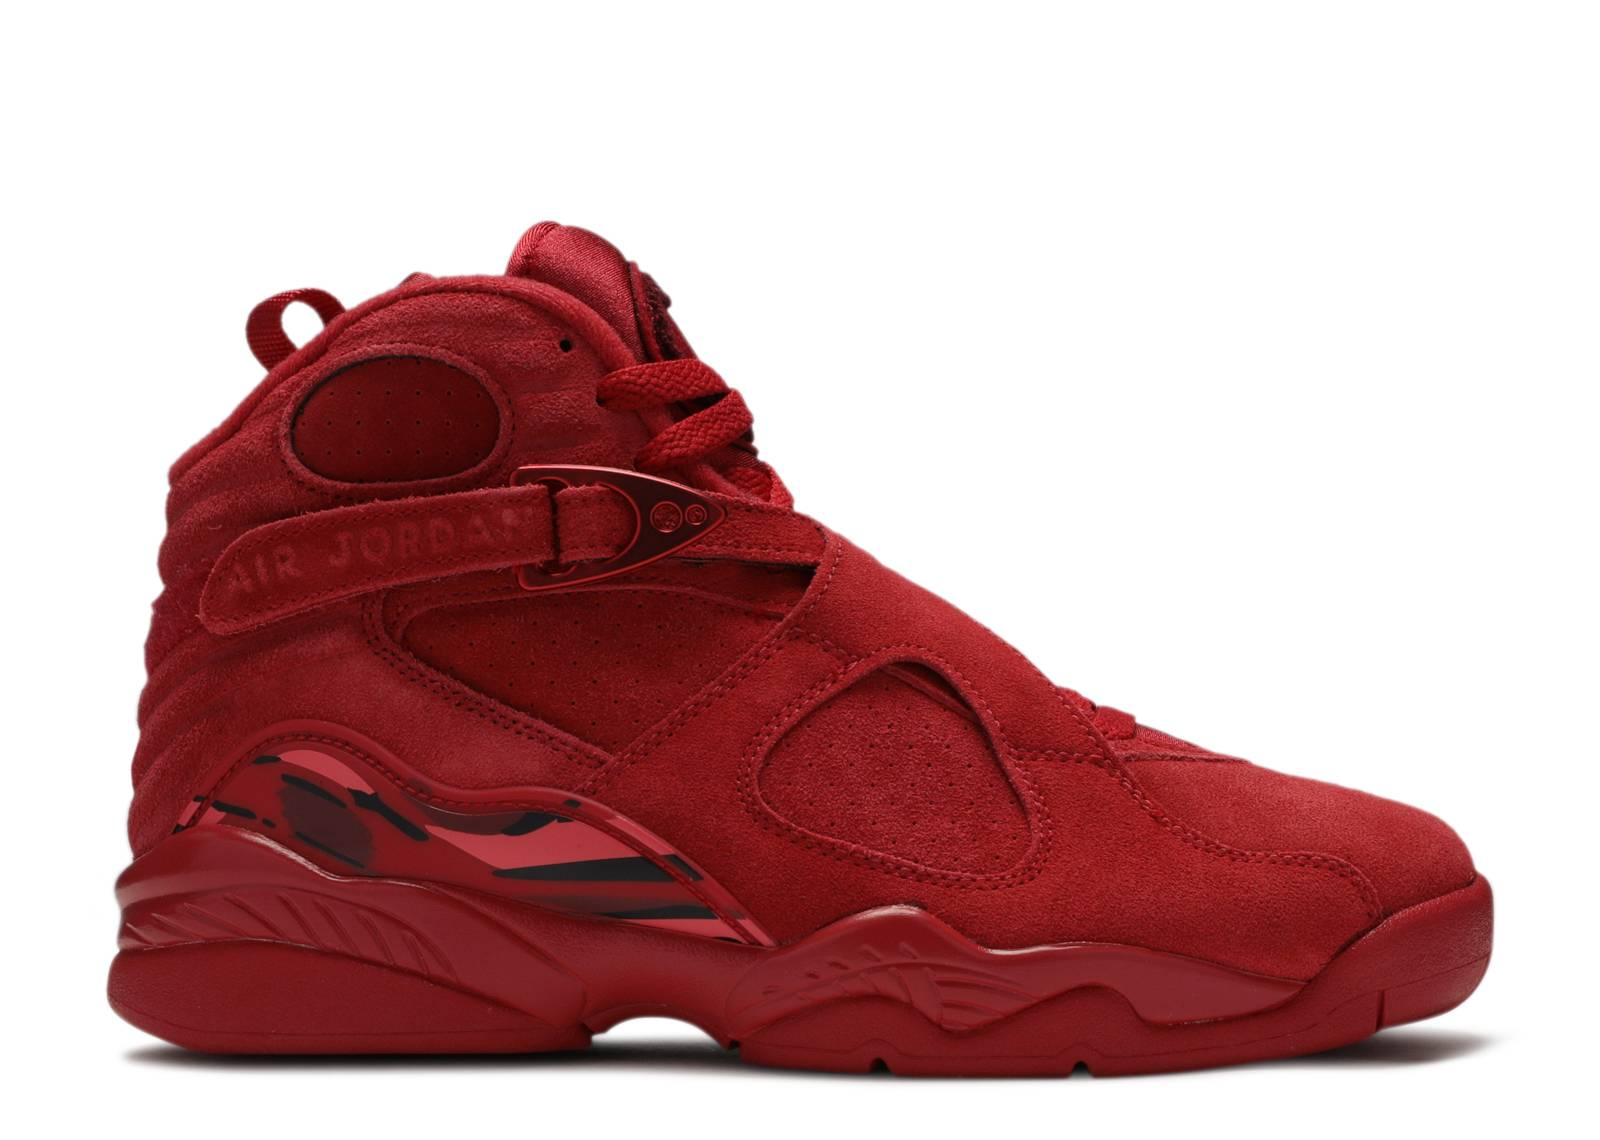 premium selection 81876 4734a wmns air jordan 8 retro vday